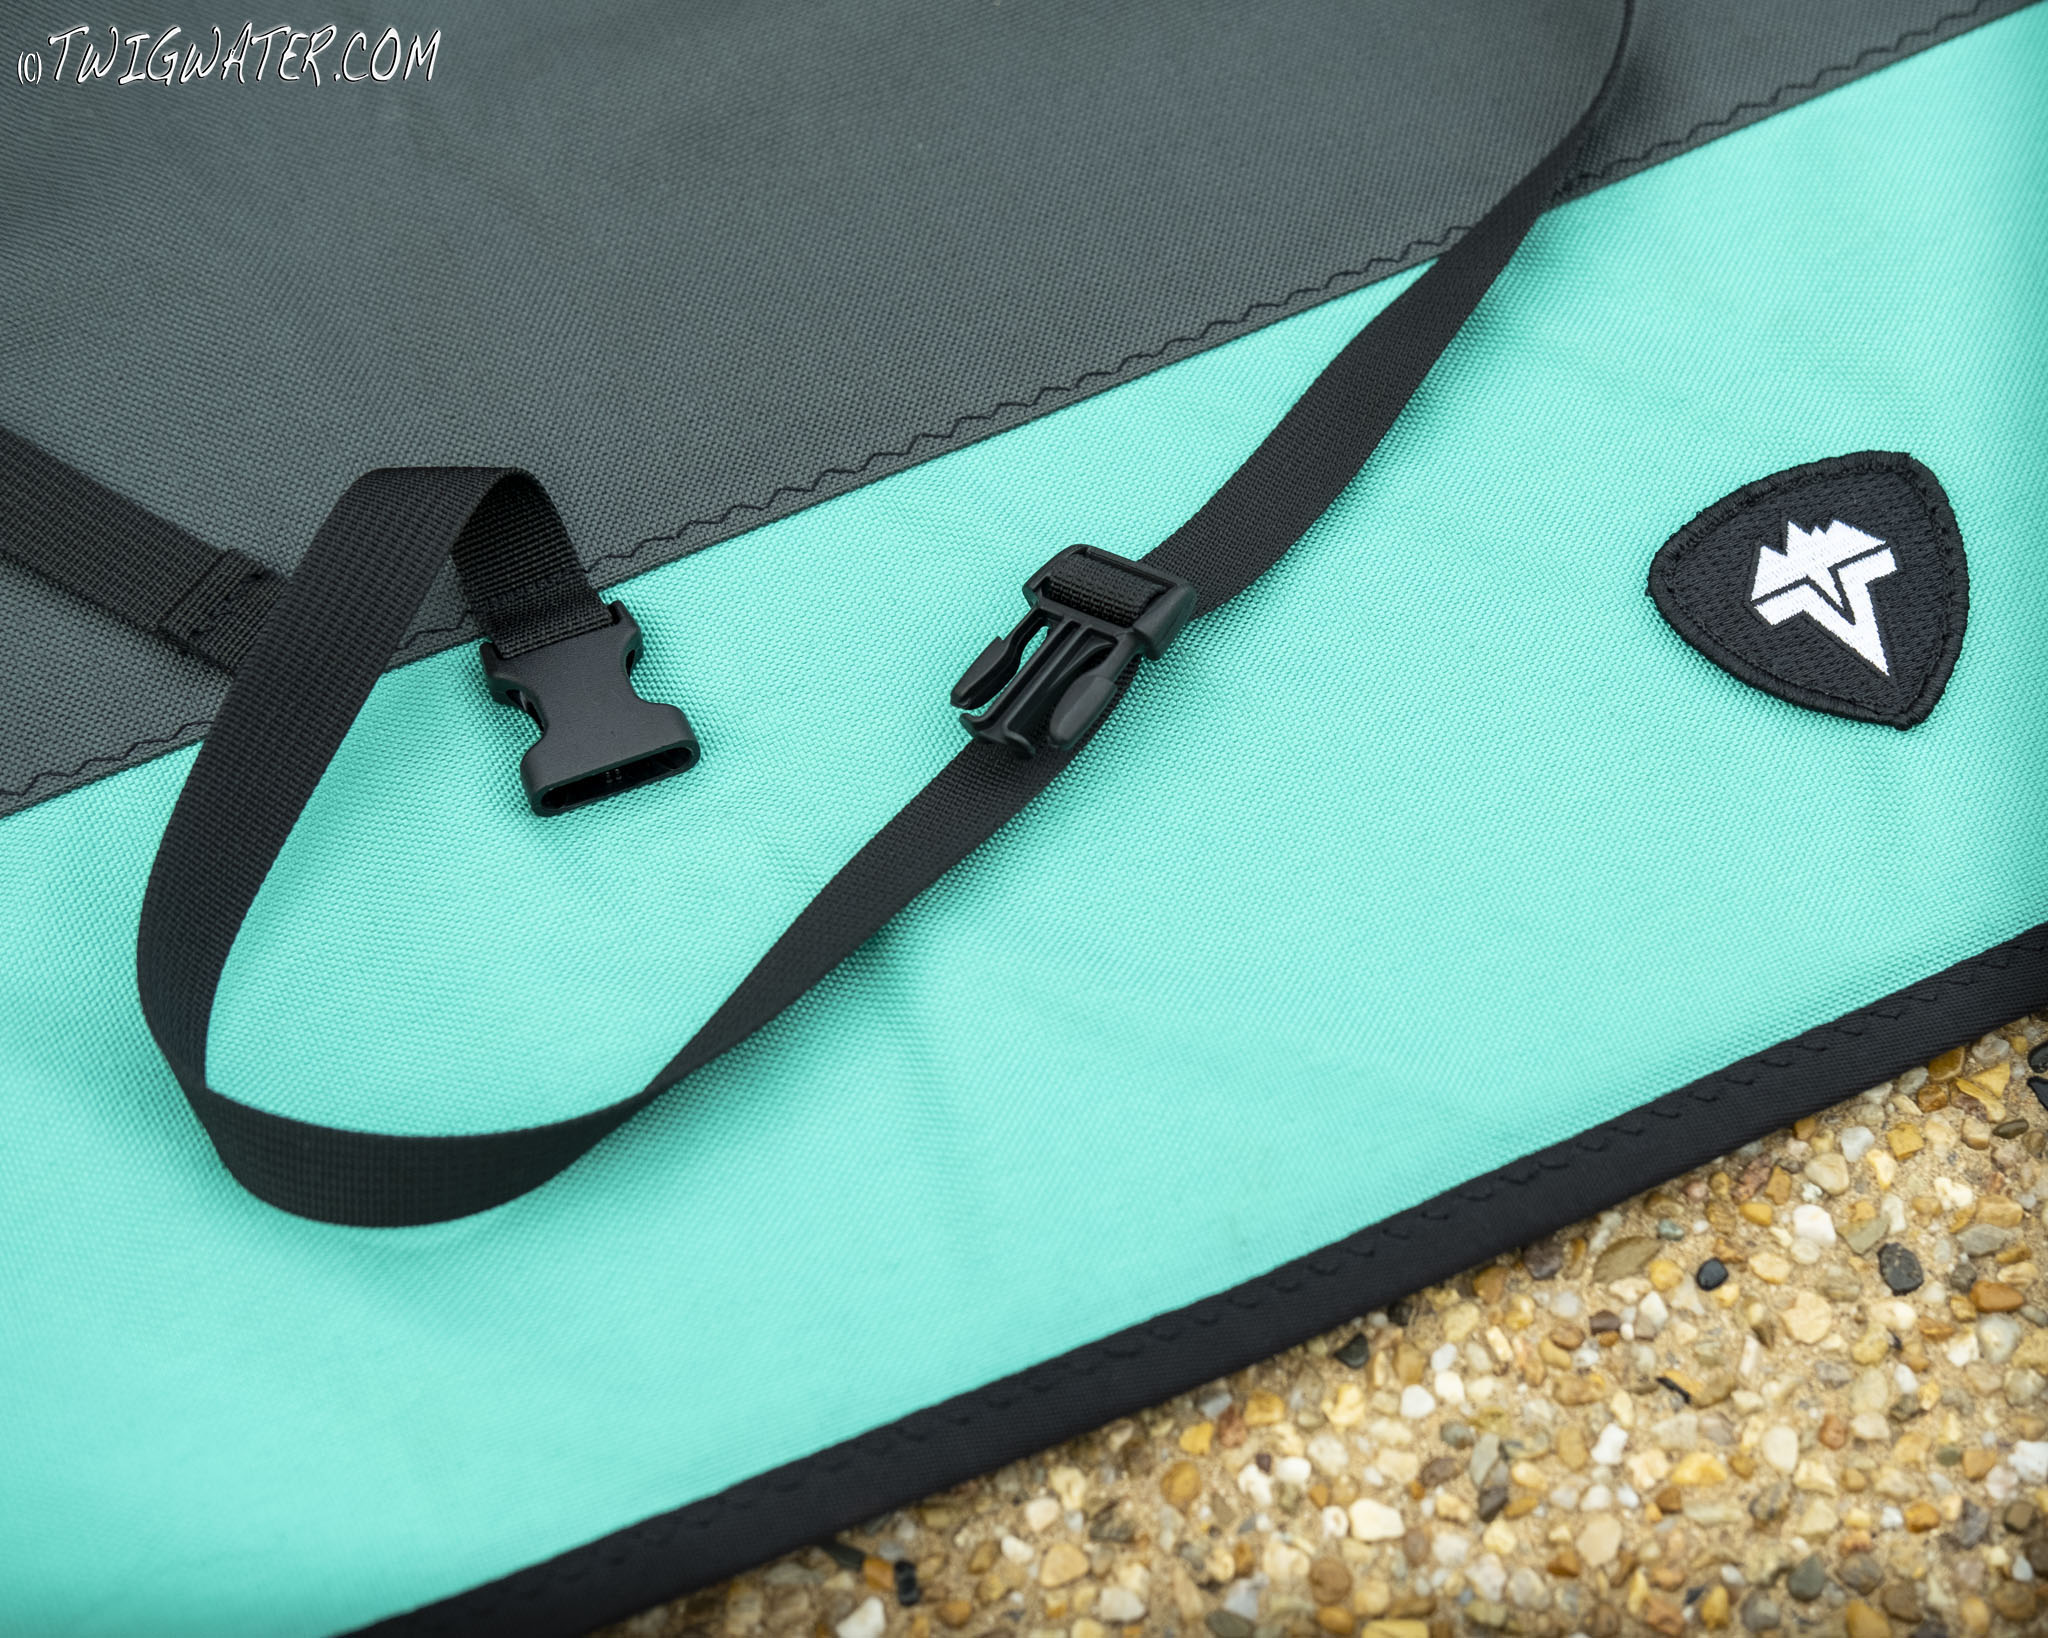 Vedavoo Rod Quiver in Teal and Black